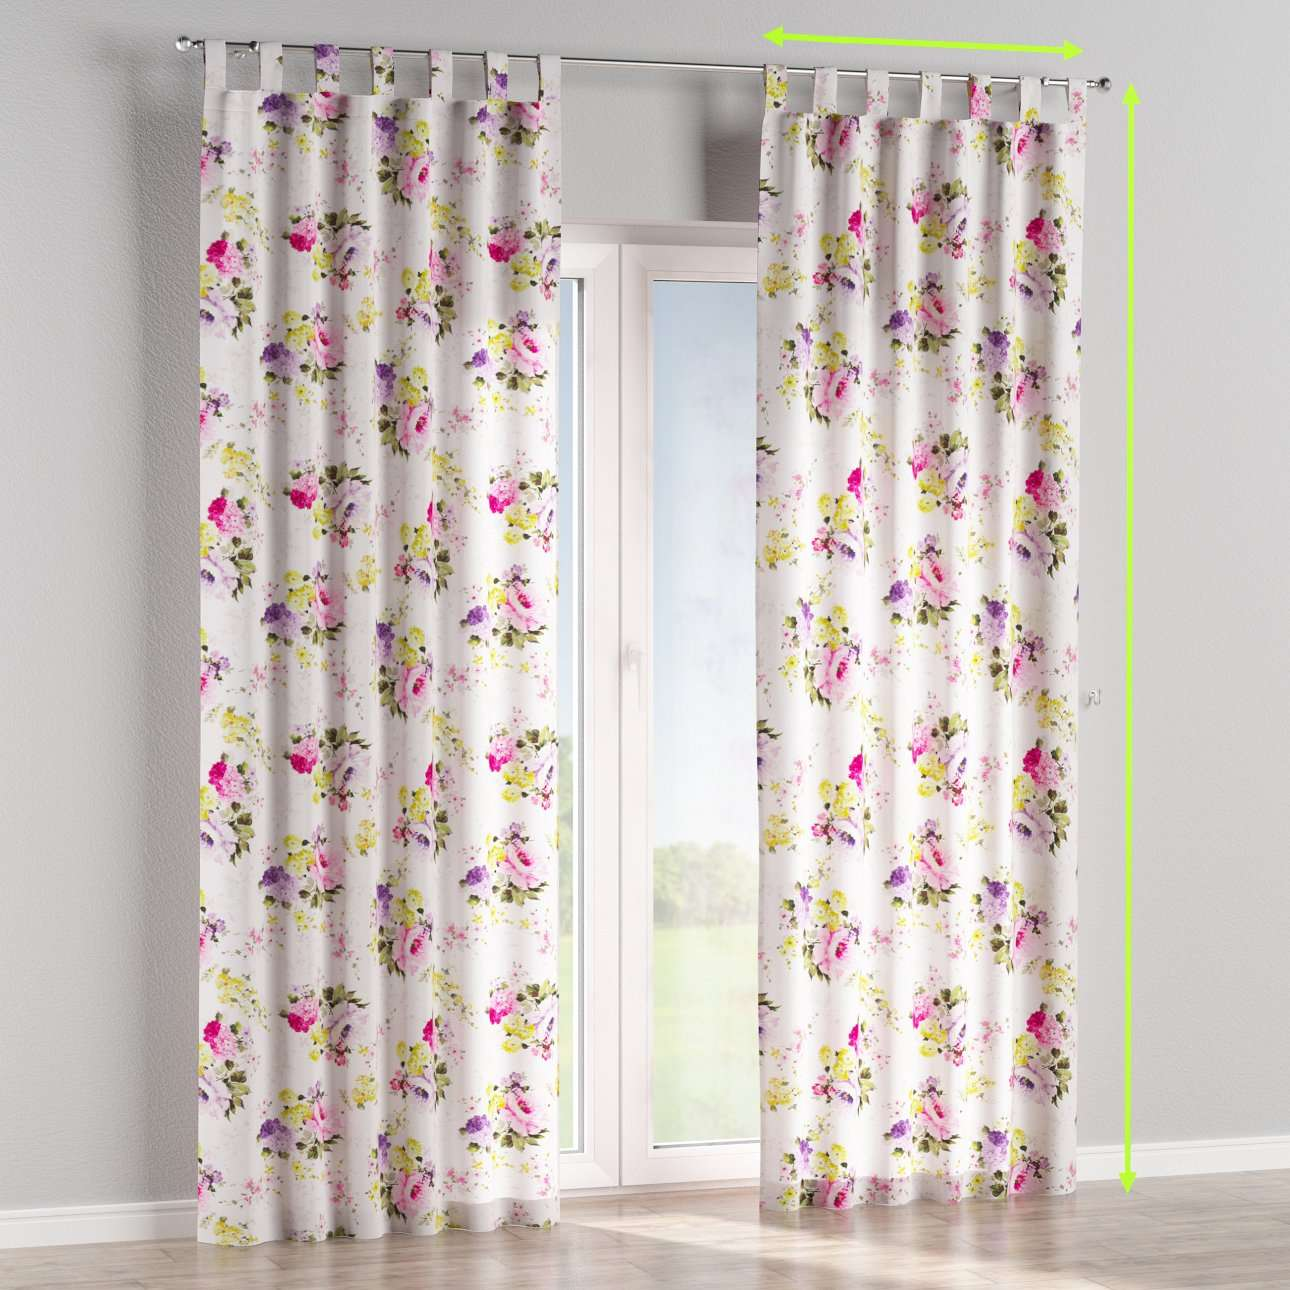 Tab top lined curtains in collection Monet, fabric: 140-00